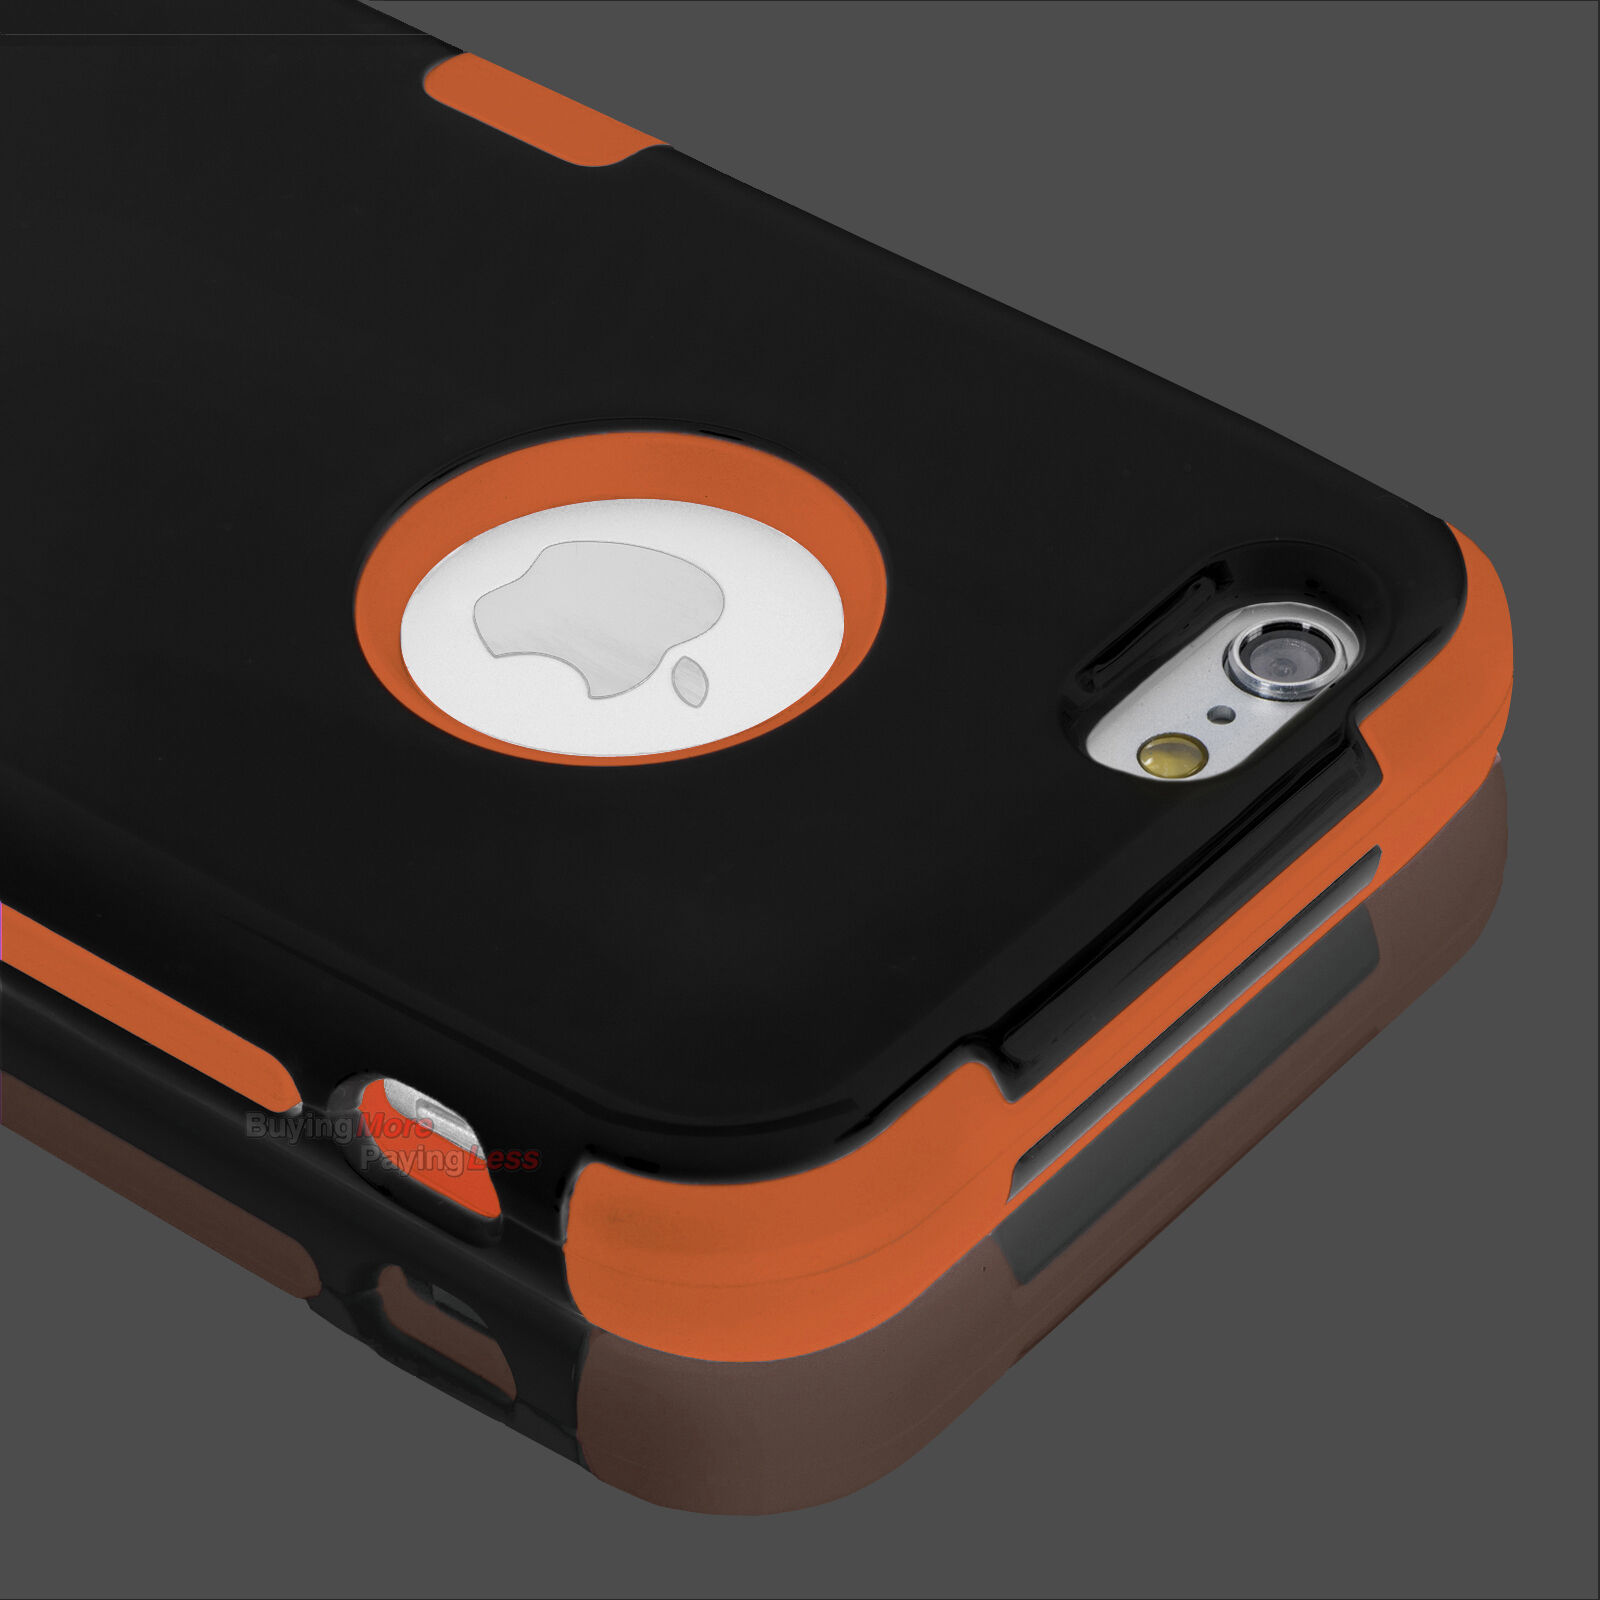 """Hybrid Shockproof Hard Rugged Cover Case For Apple iPhone 8 7s 7 6s 6 4.7"""" 5.5"""